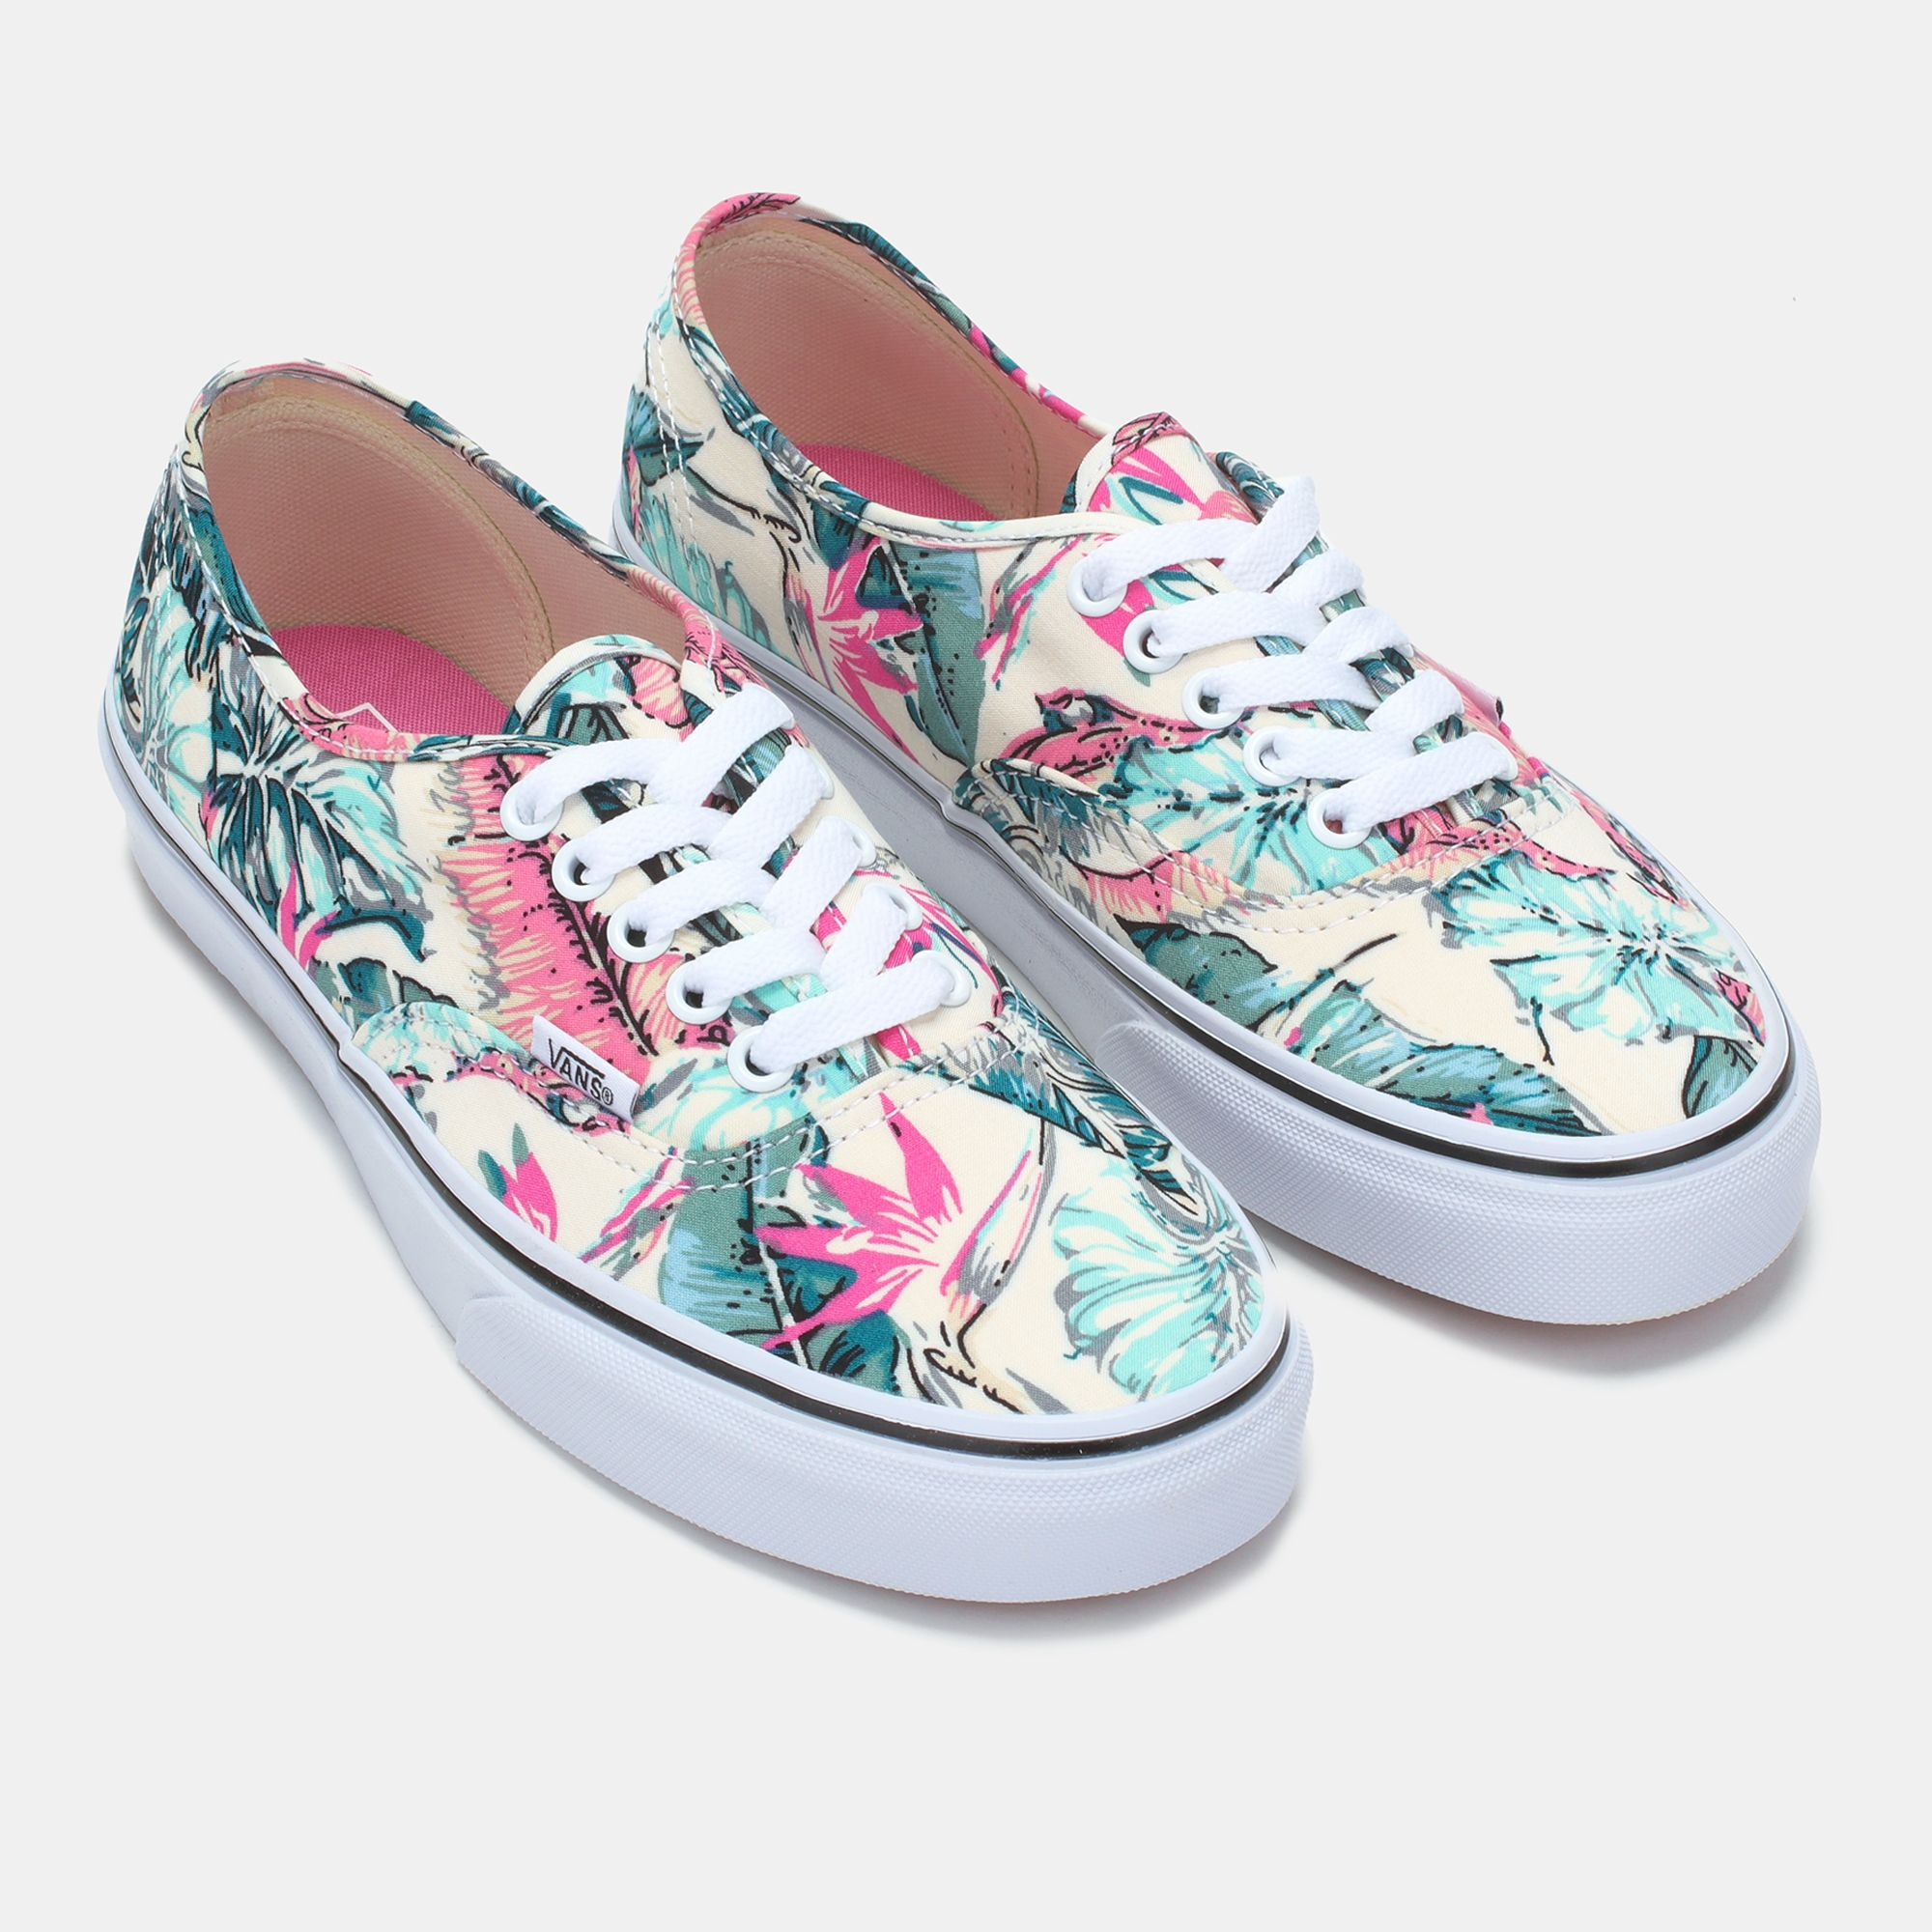 56c7b3f2d6 Shop Multi Vans Hawaiian Floral Authentic Skate Shoe for Womens by ...